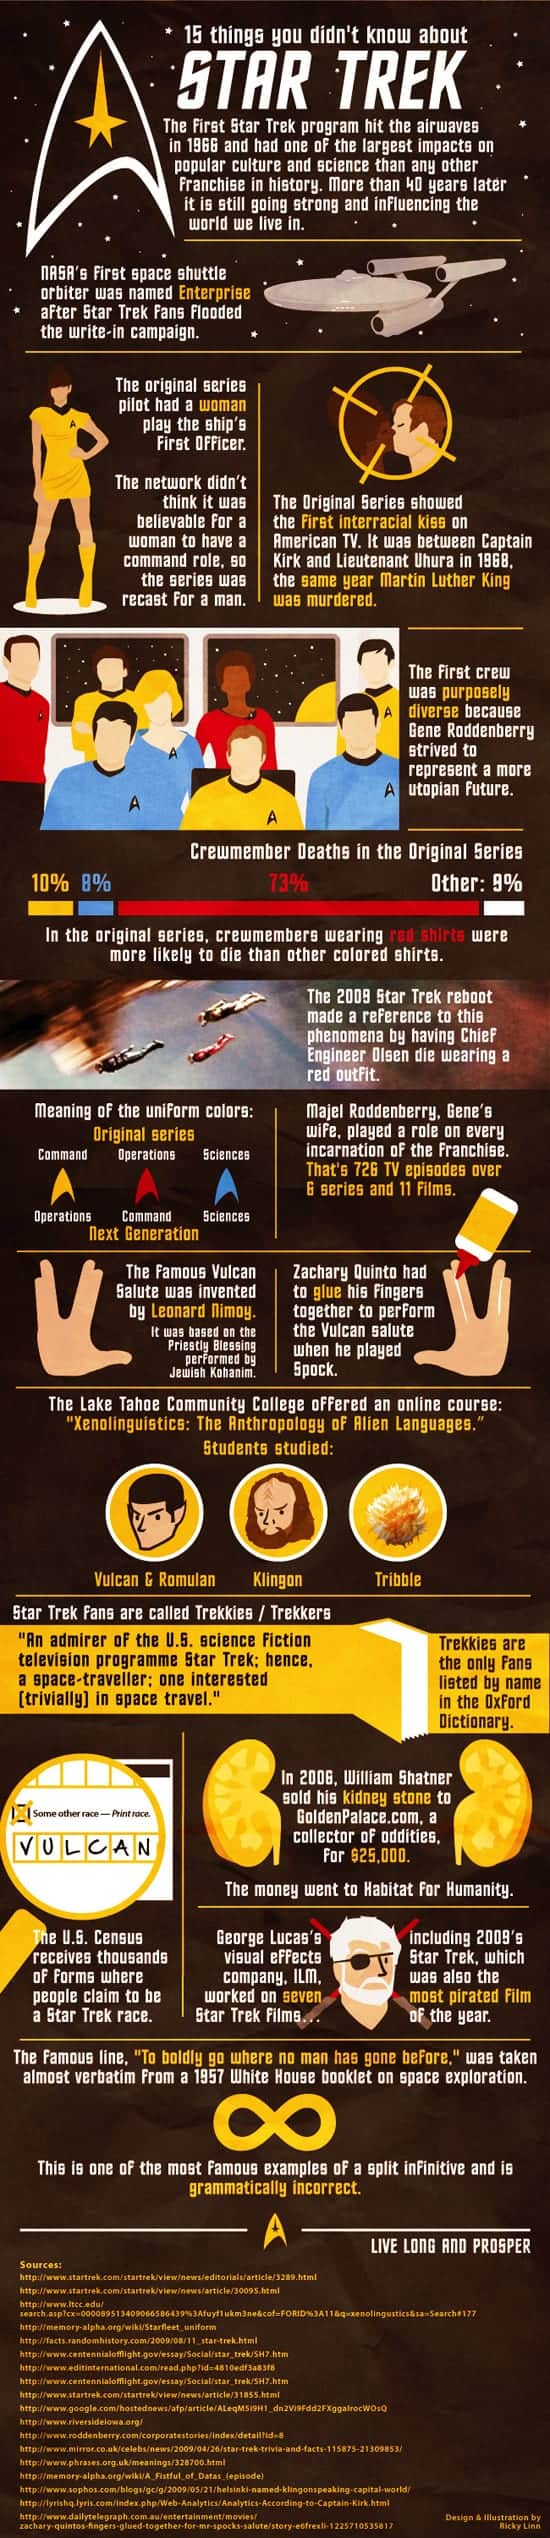 15ThingsStarTrekInfographic-thumb-550x2538-38560